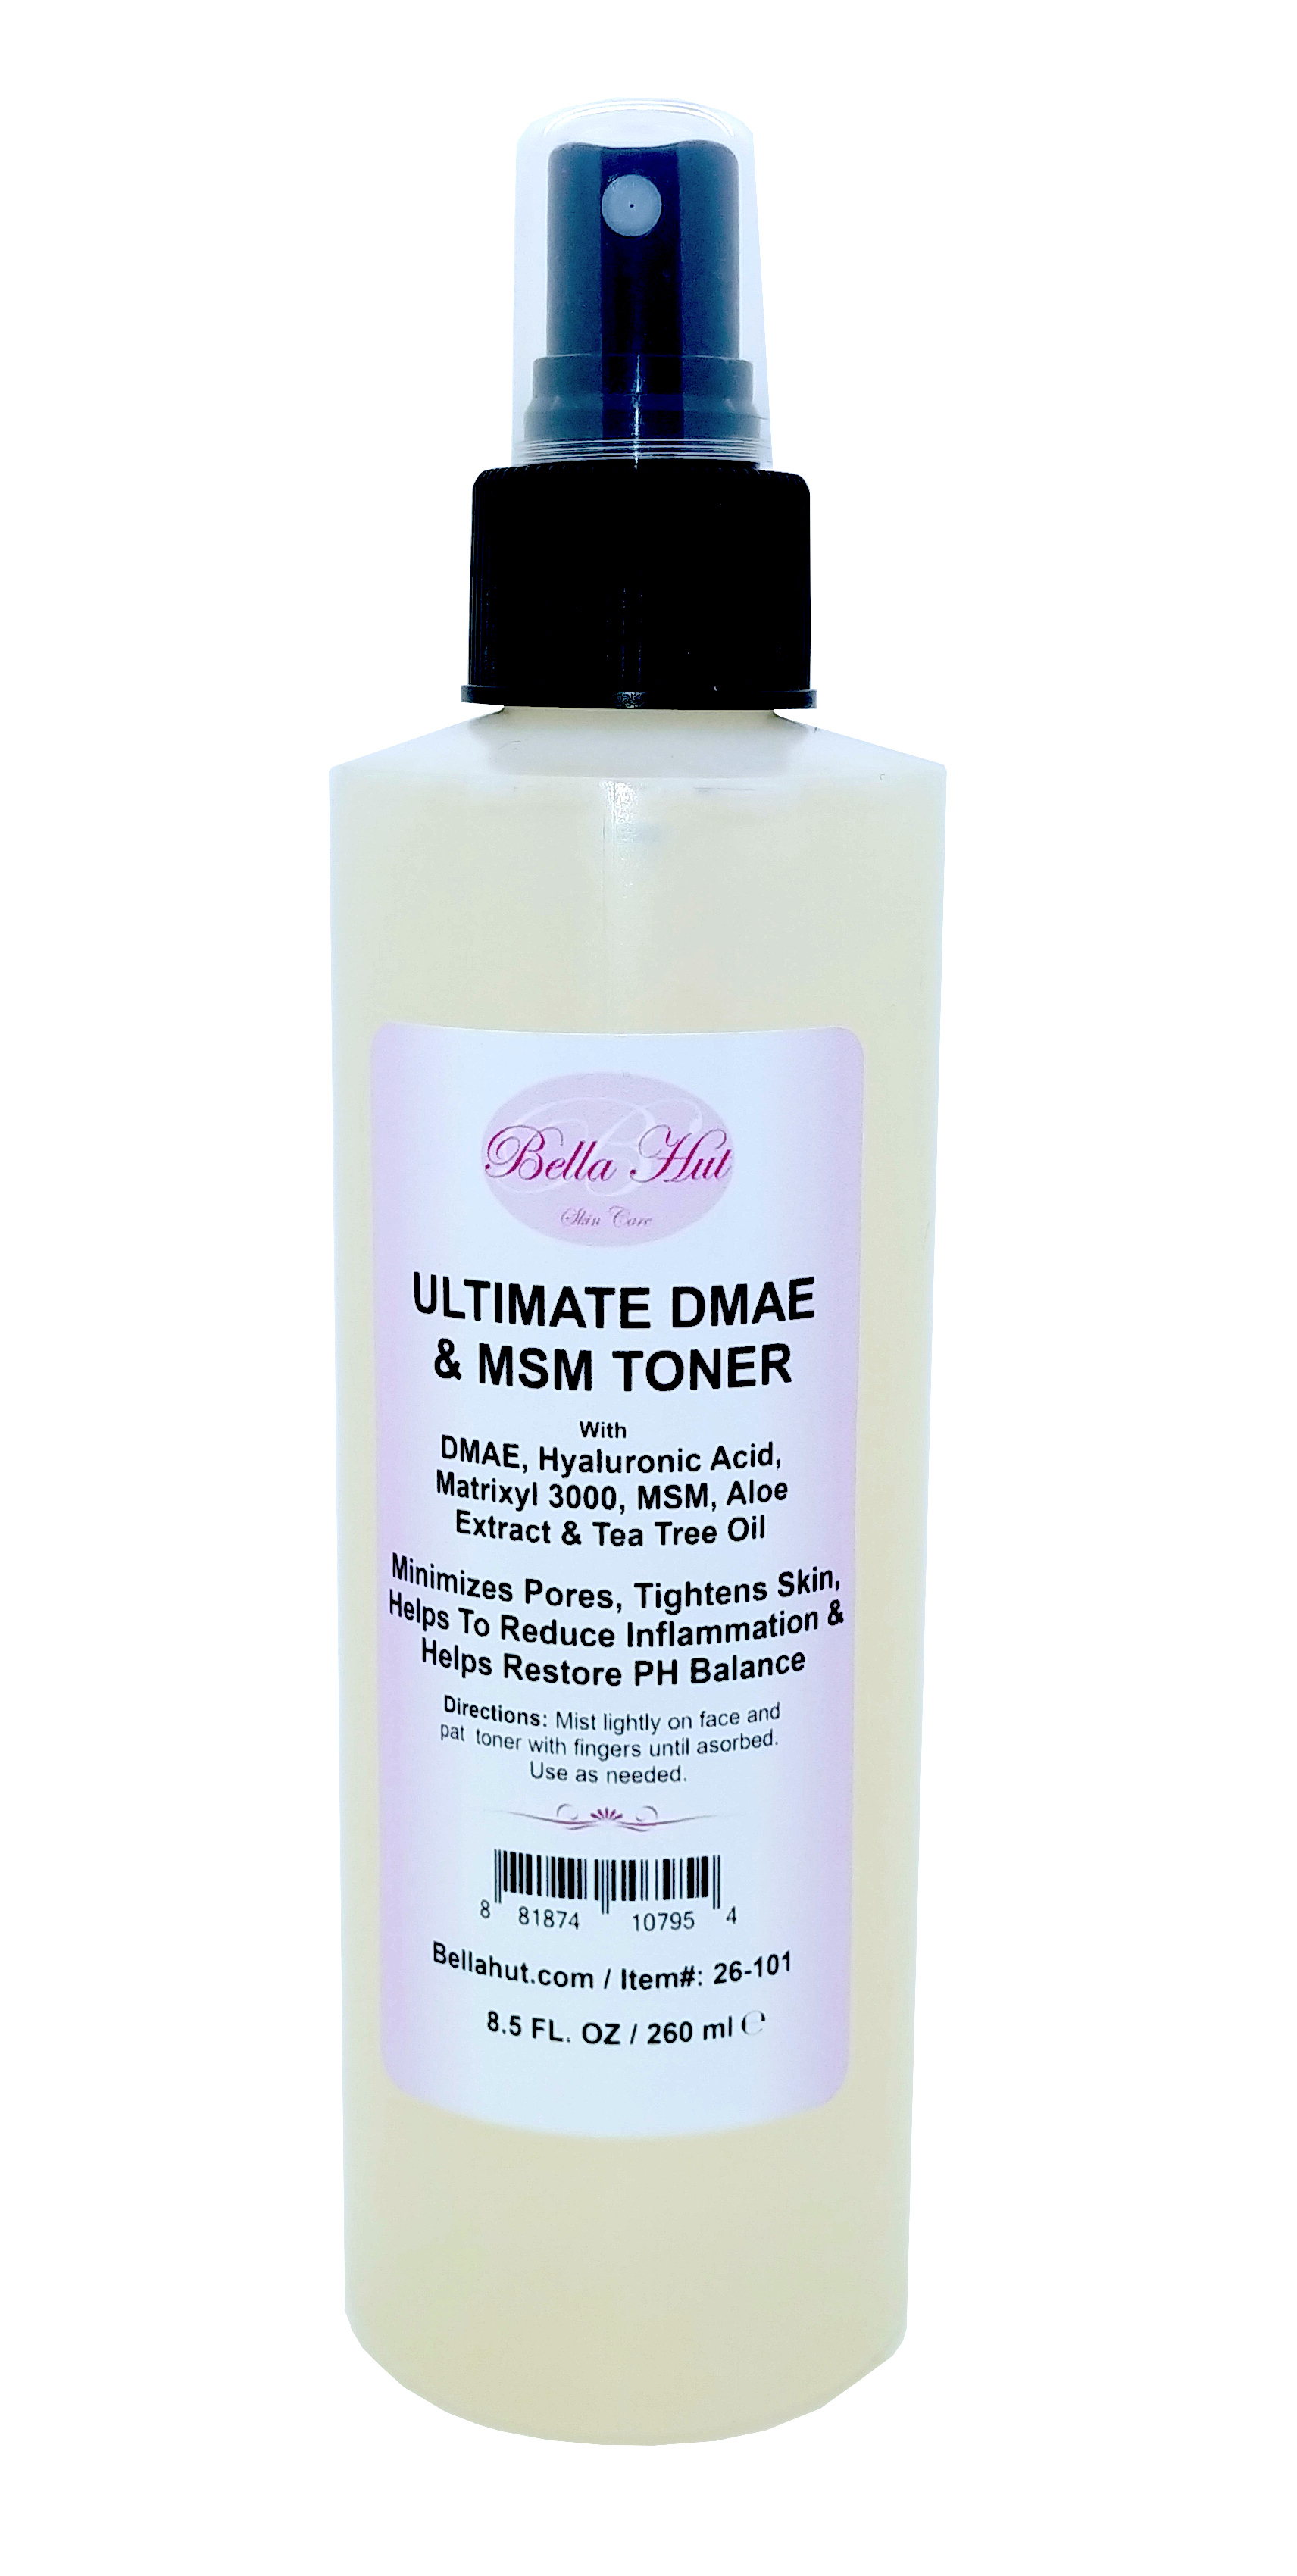 Ultimate DMAE Firming Toner with DMAE, Hyaluronic Acid, Matrixyl 3000, MSM, Aloe extract and Tea Tree essential oil